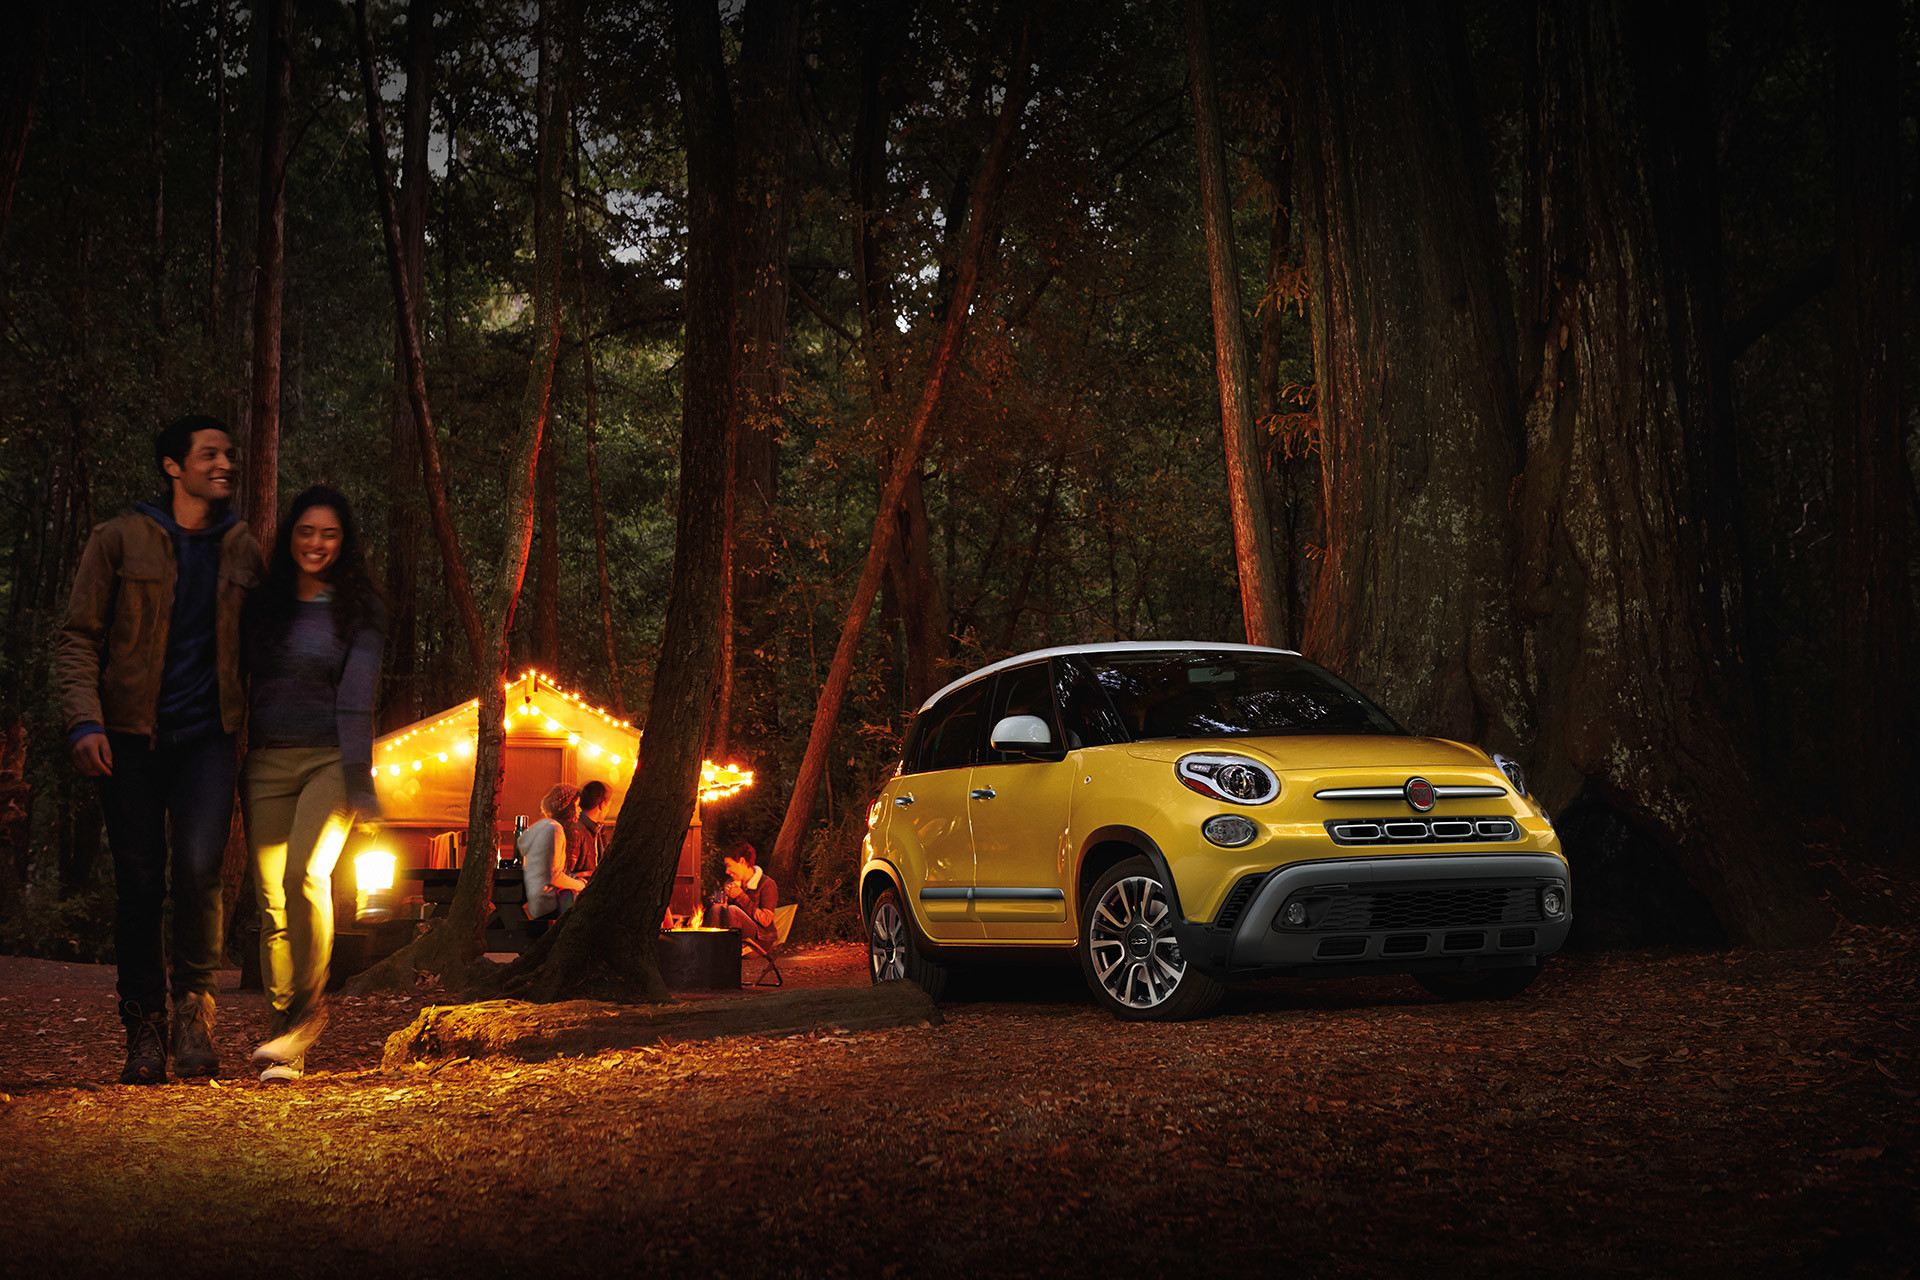 2019 Fiat 500L parked in forested area at night, shown in yellow